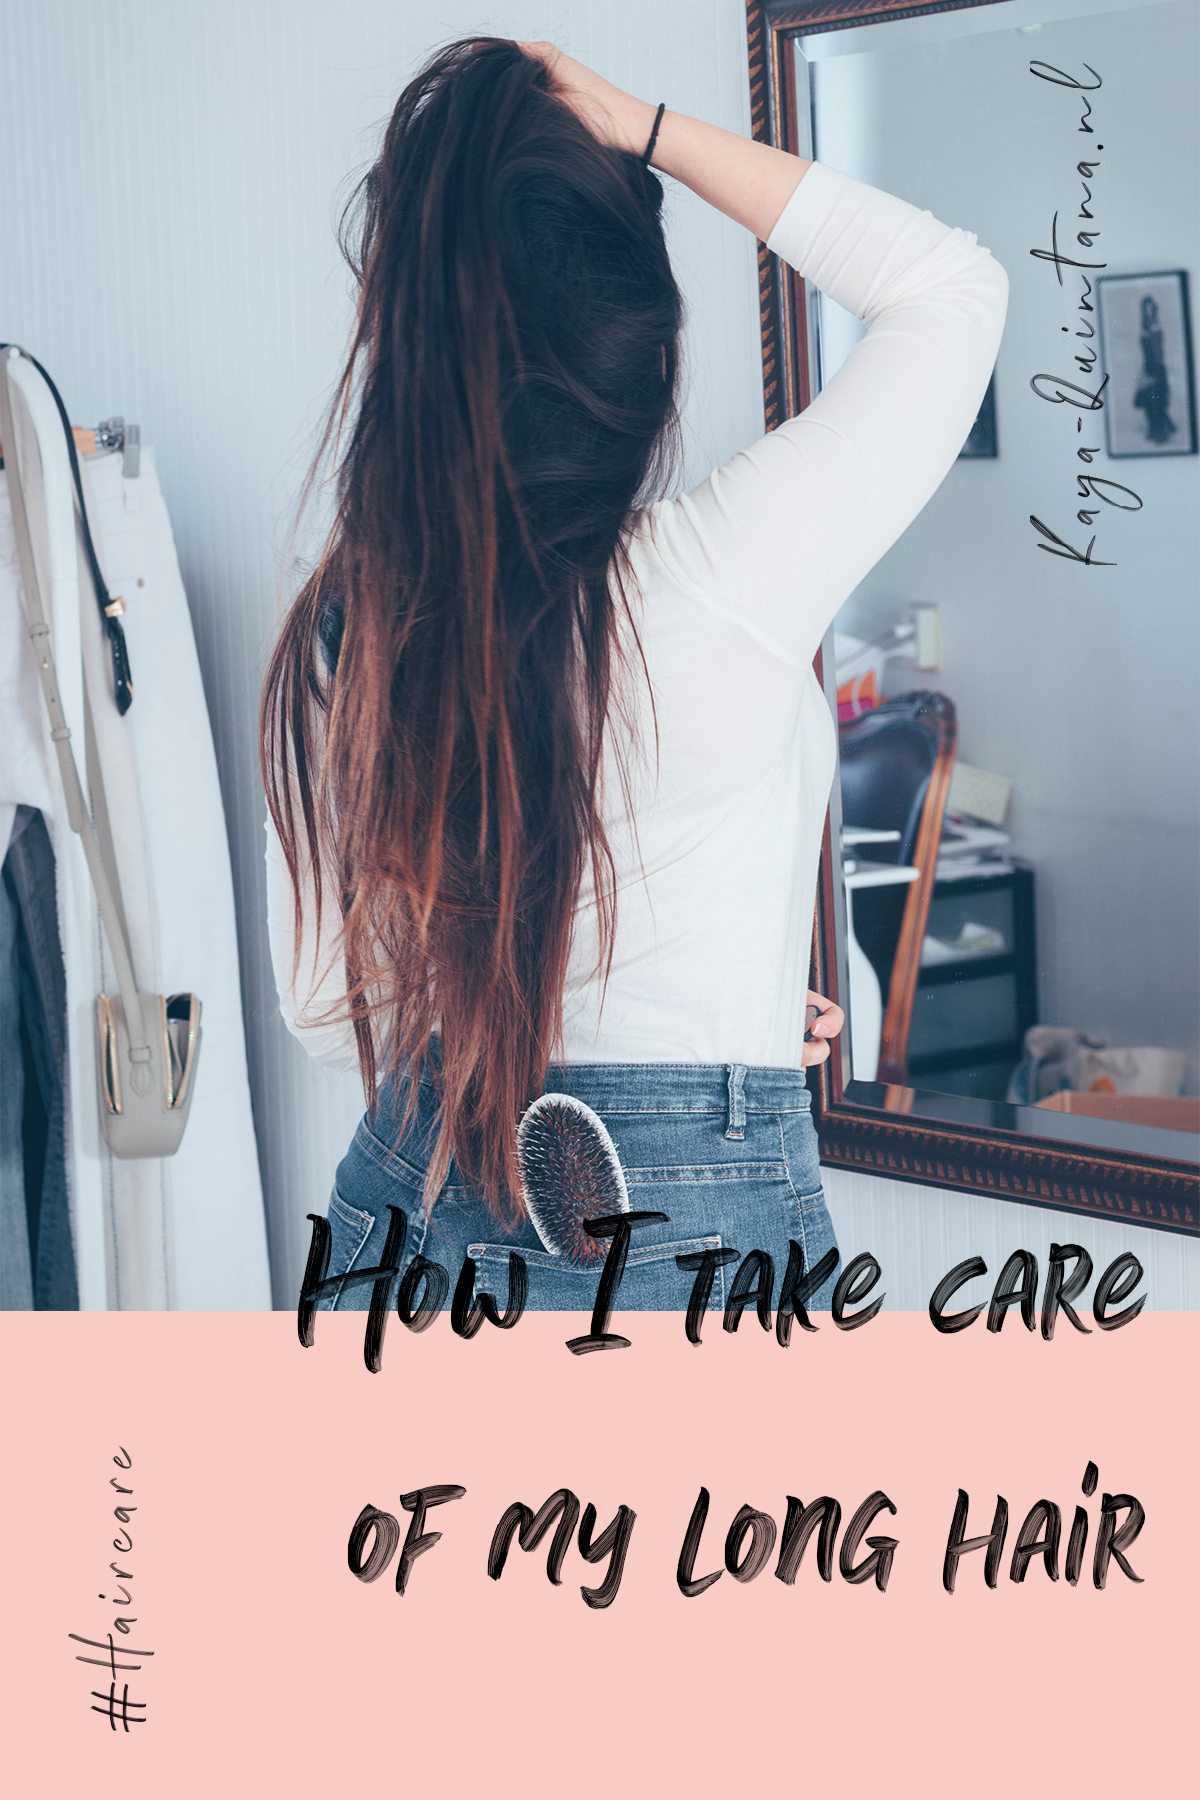 How I take care of long hair